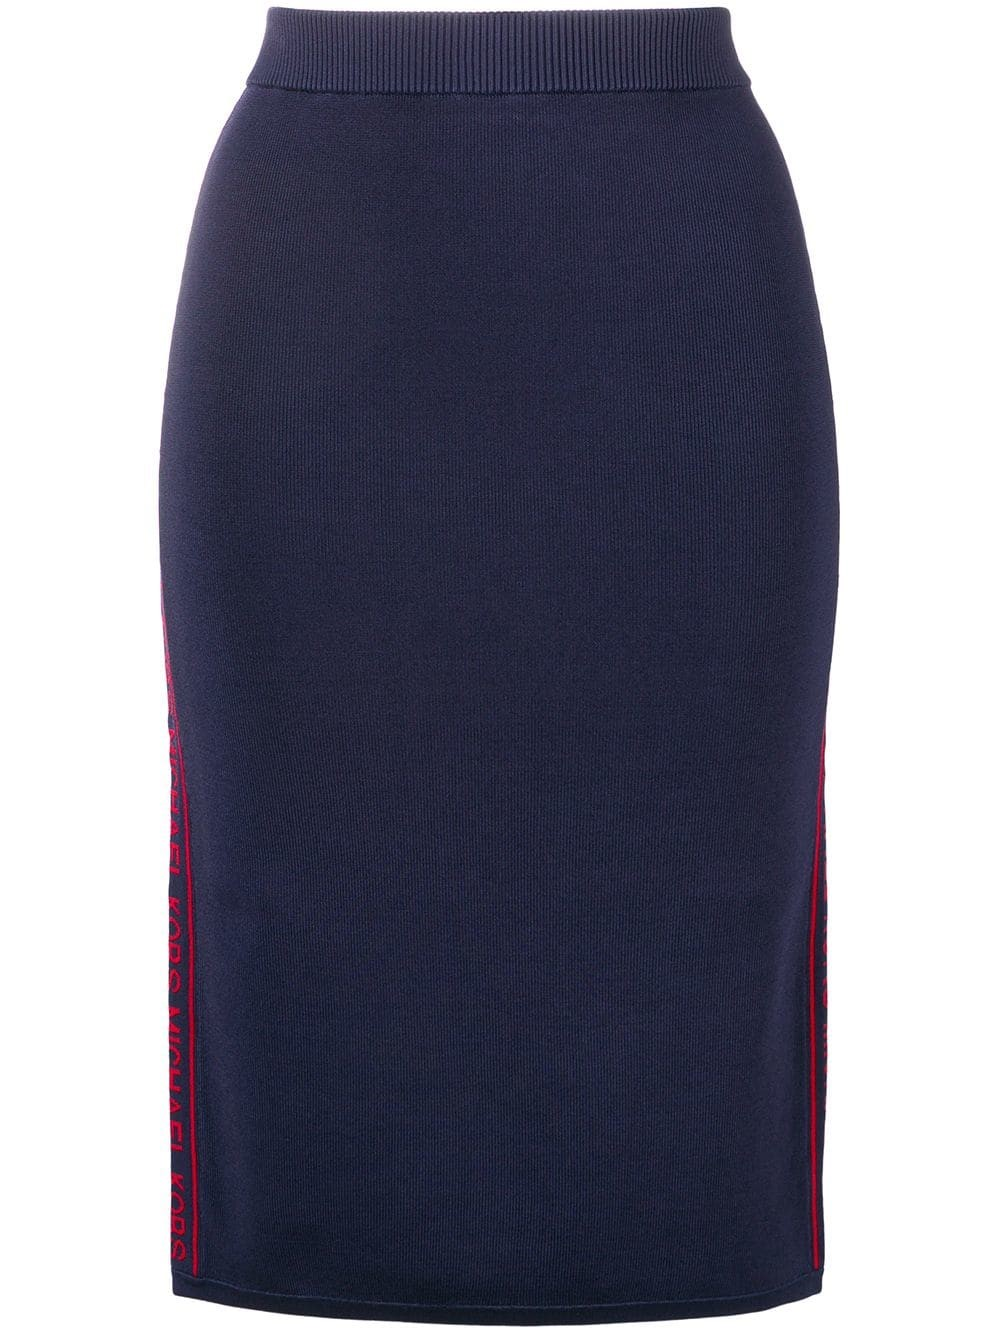 a26a1c7c michael kors mk SIDE BAND SKIRT available on montiboutique.com - 27362